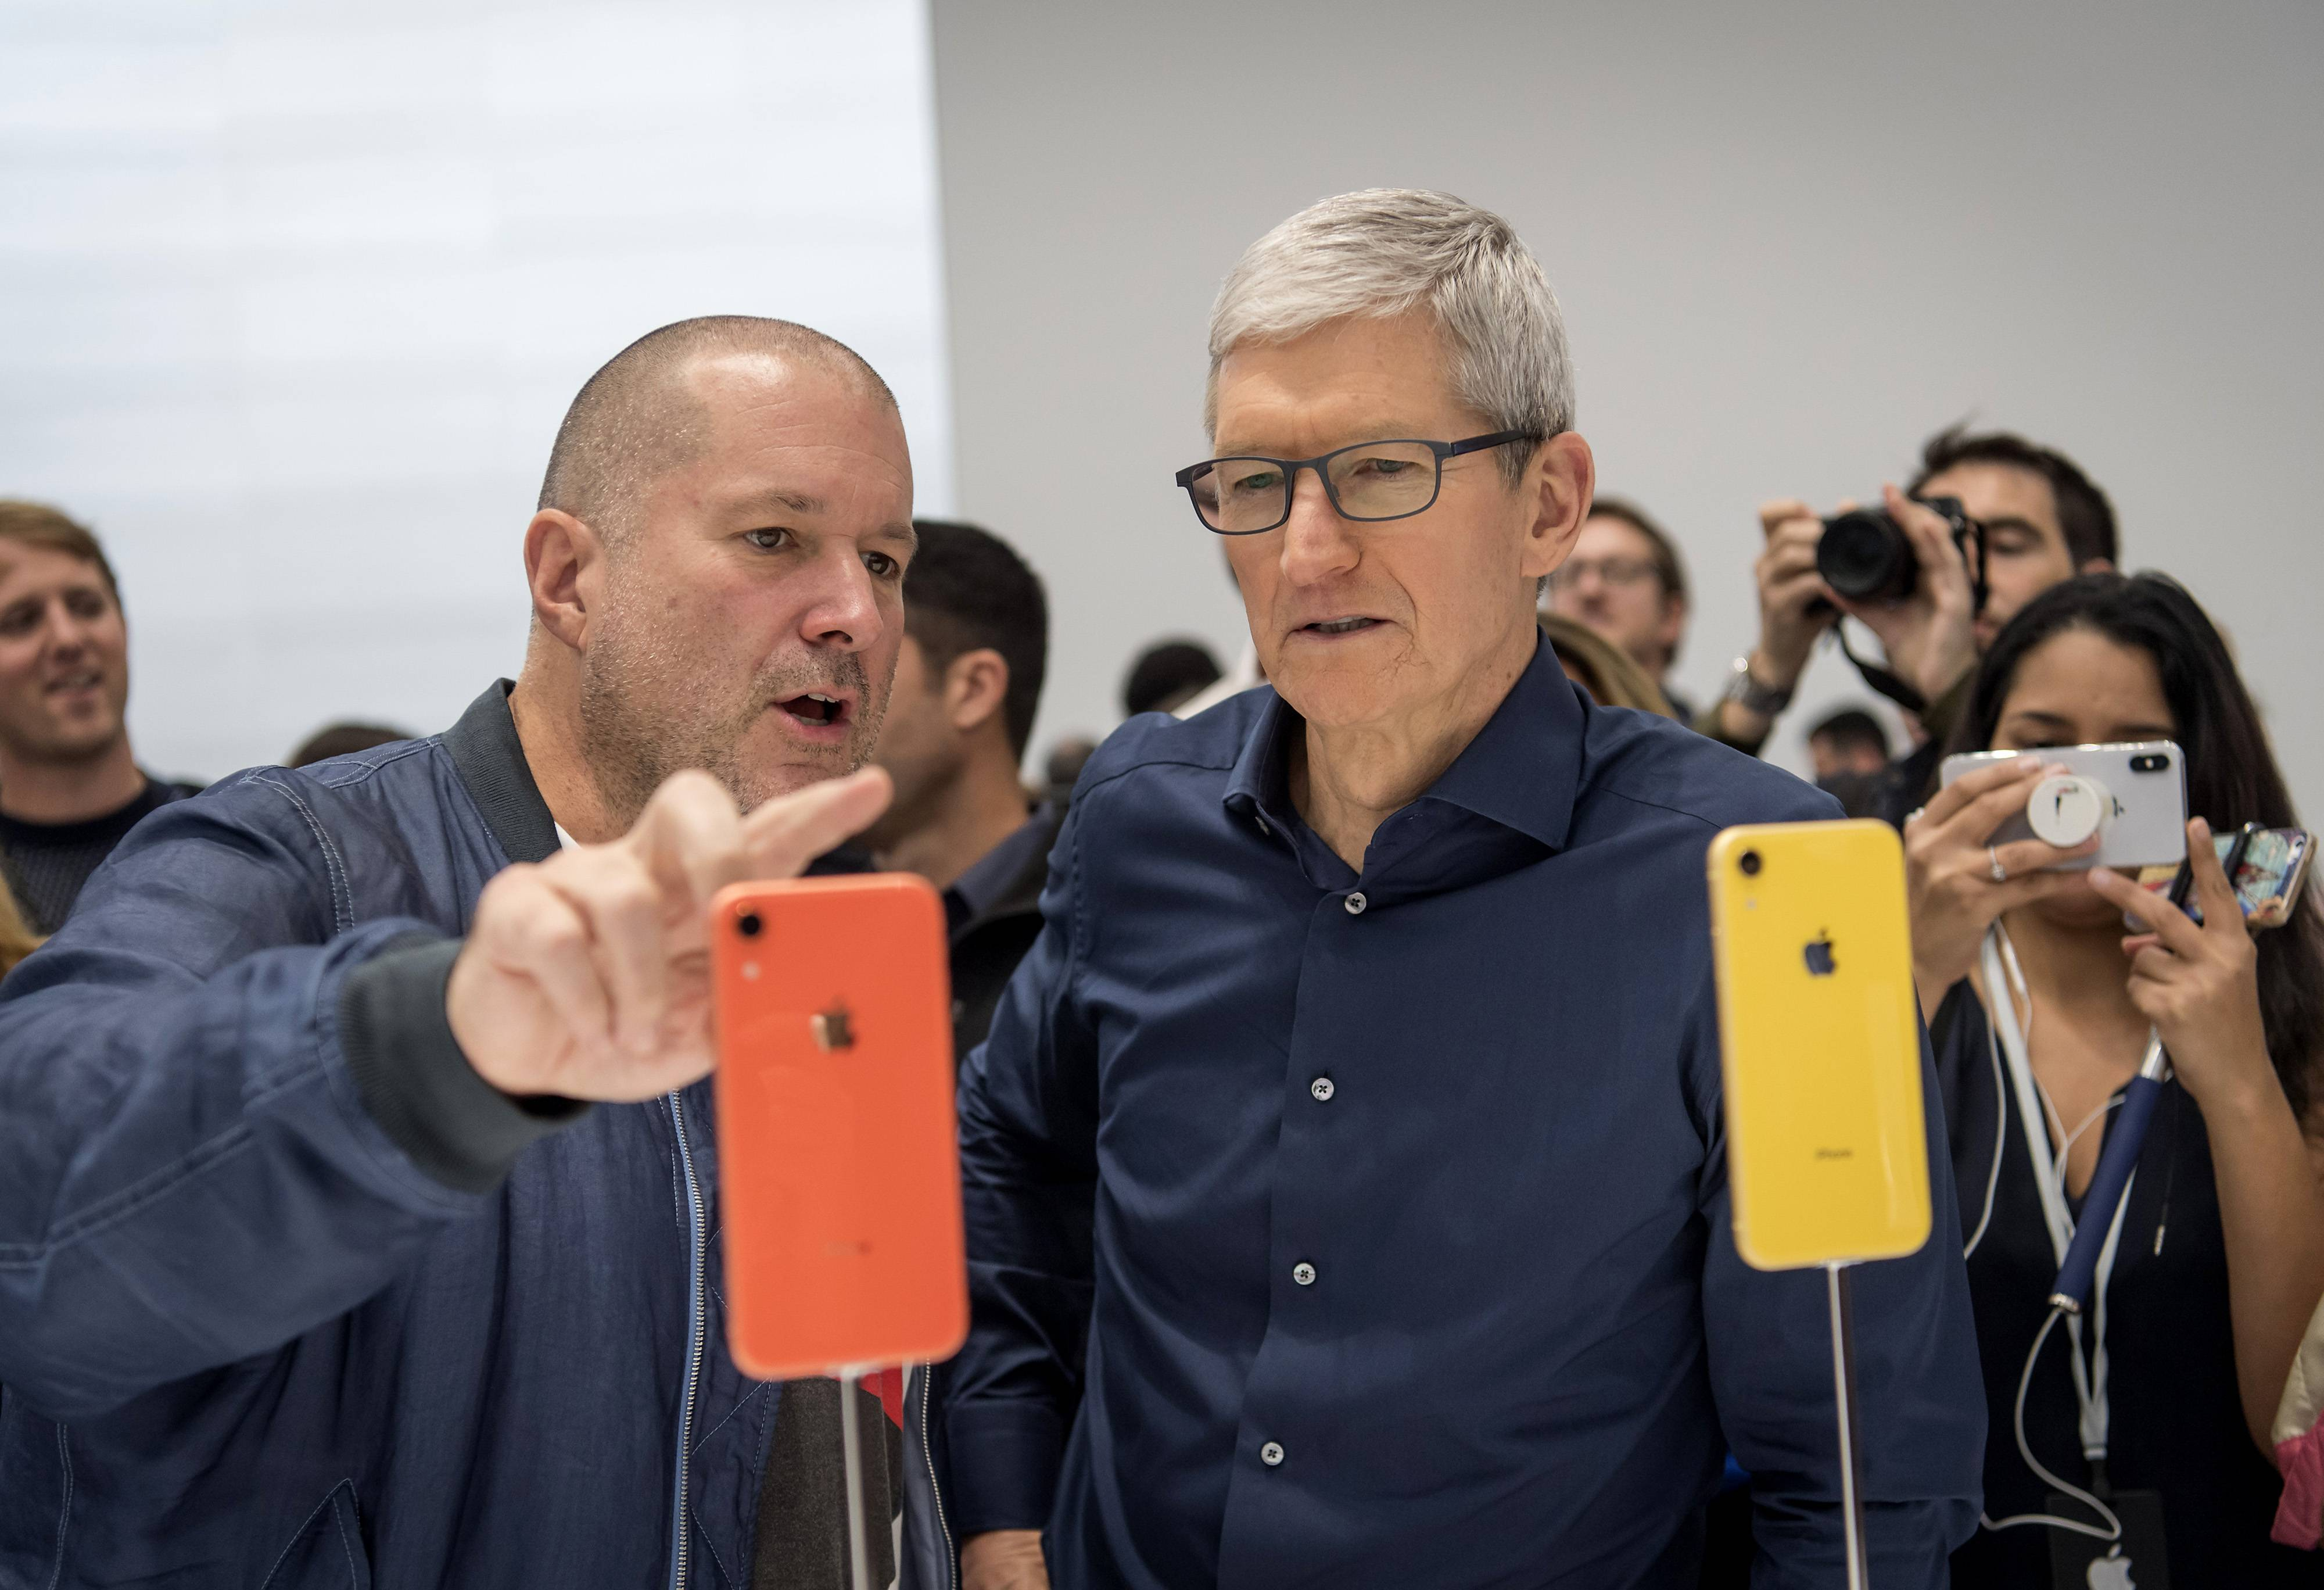 Apple CEO Tim Cook, right, urged consumers in a recent interview not to believe the dominant tech industry narrative that the data collected about them will lead to better services.